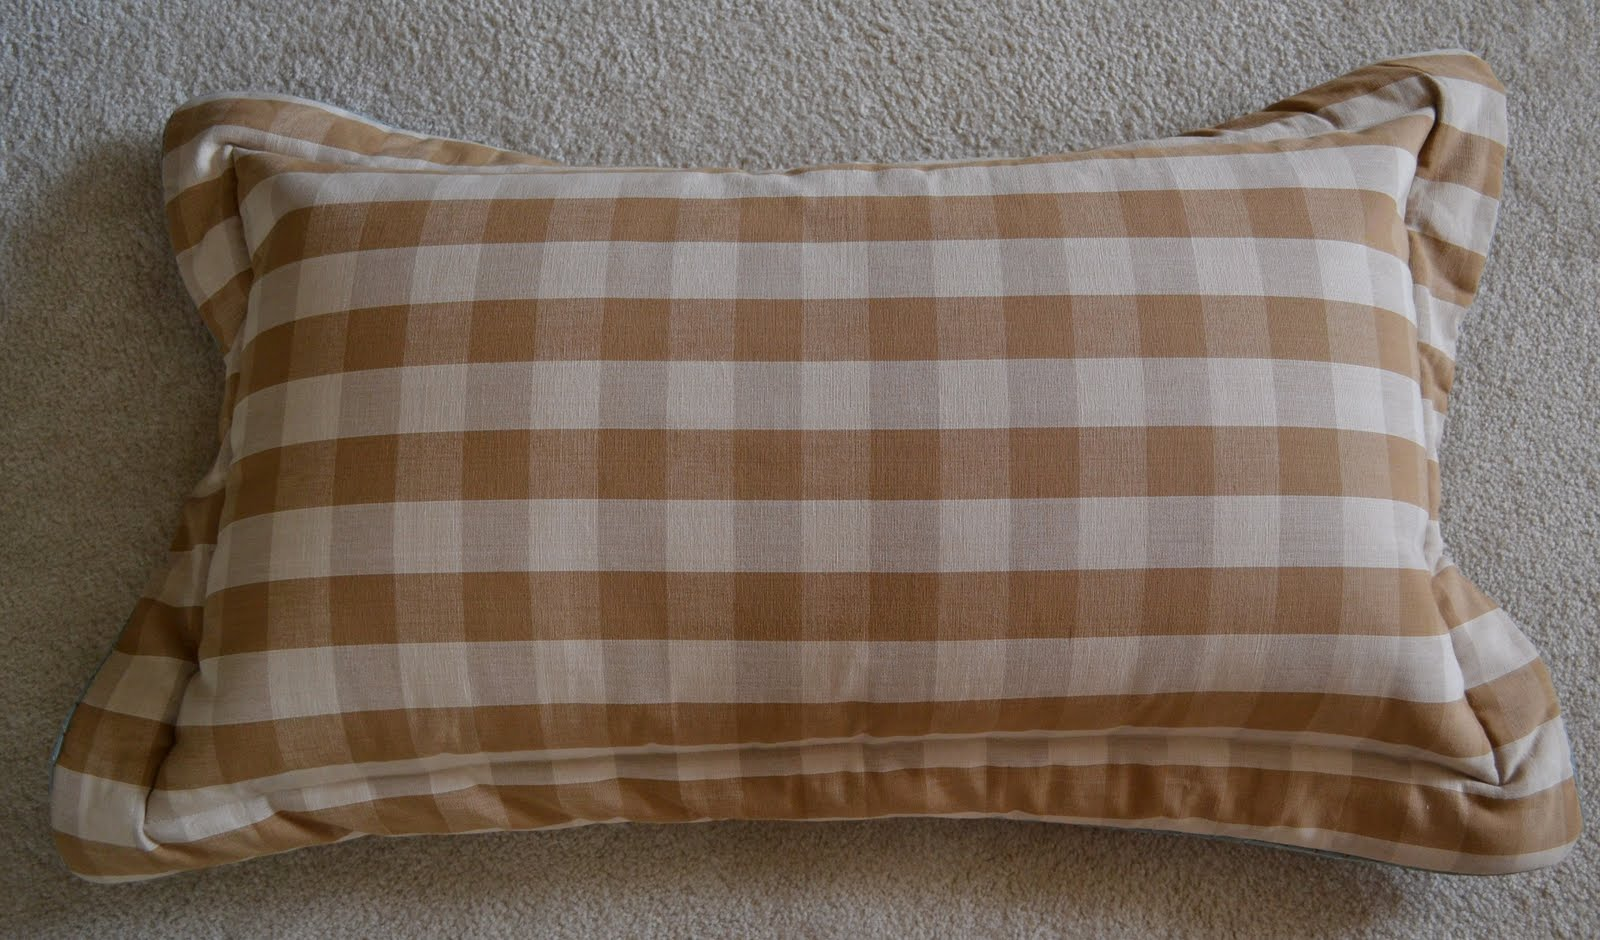 how to make a pillow sham  part   worthing court - how to make a pillow sham via worthing court blog